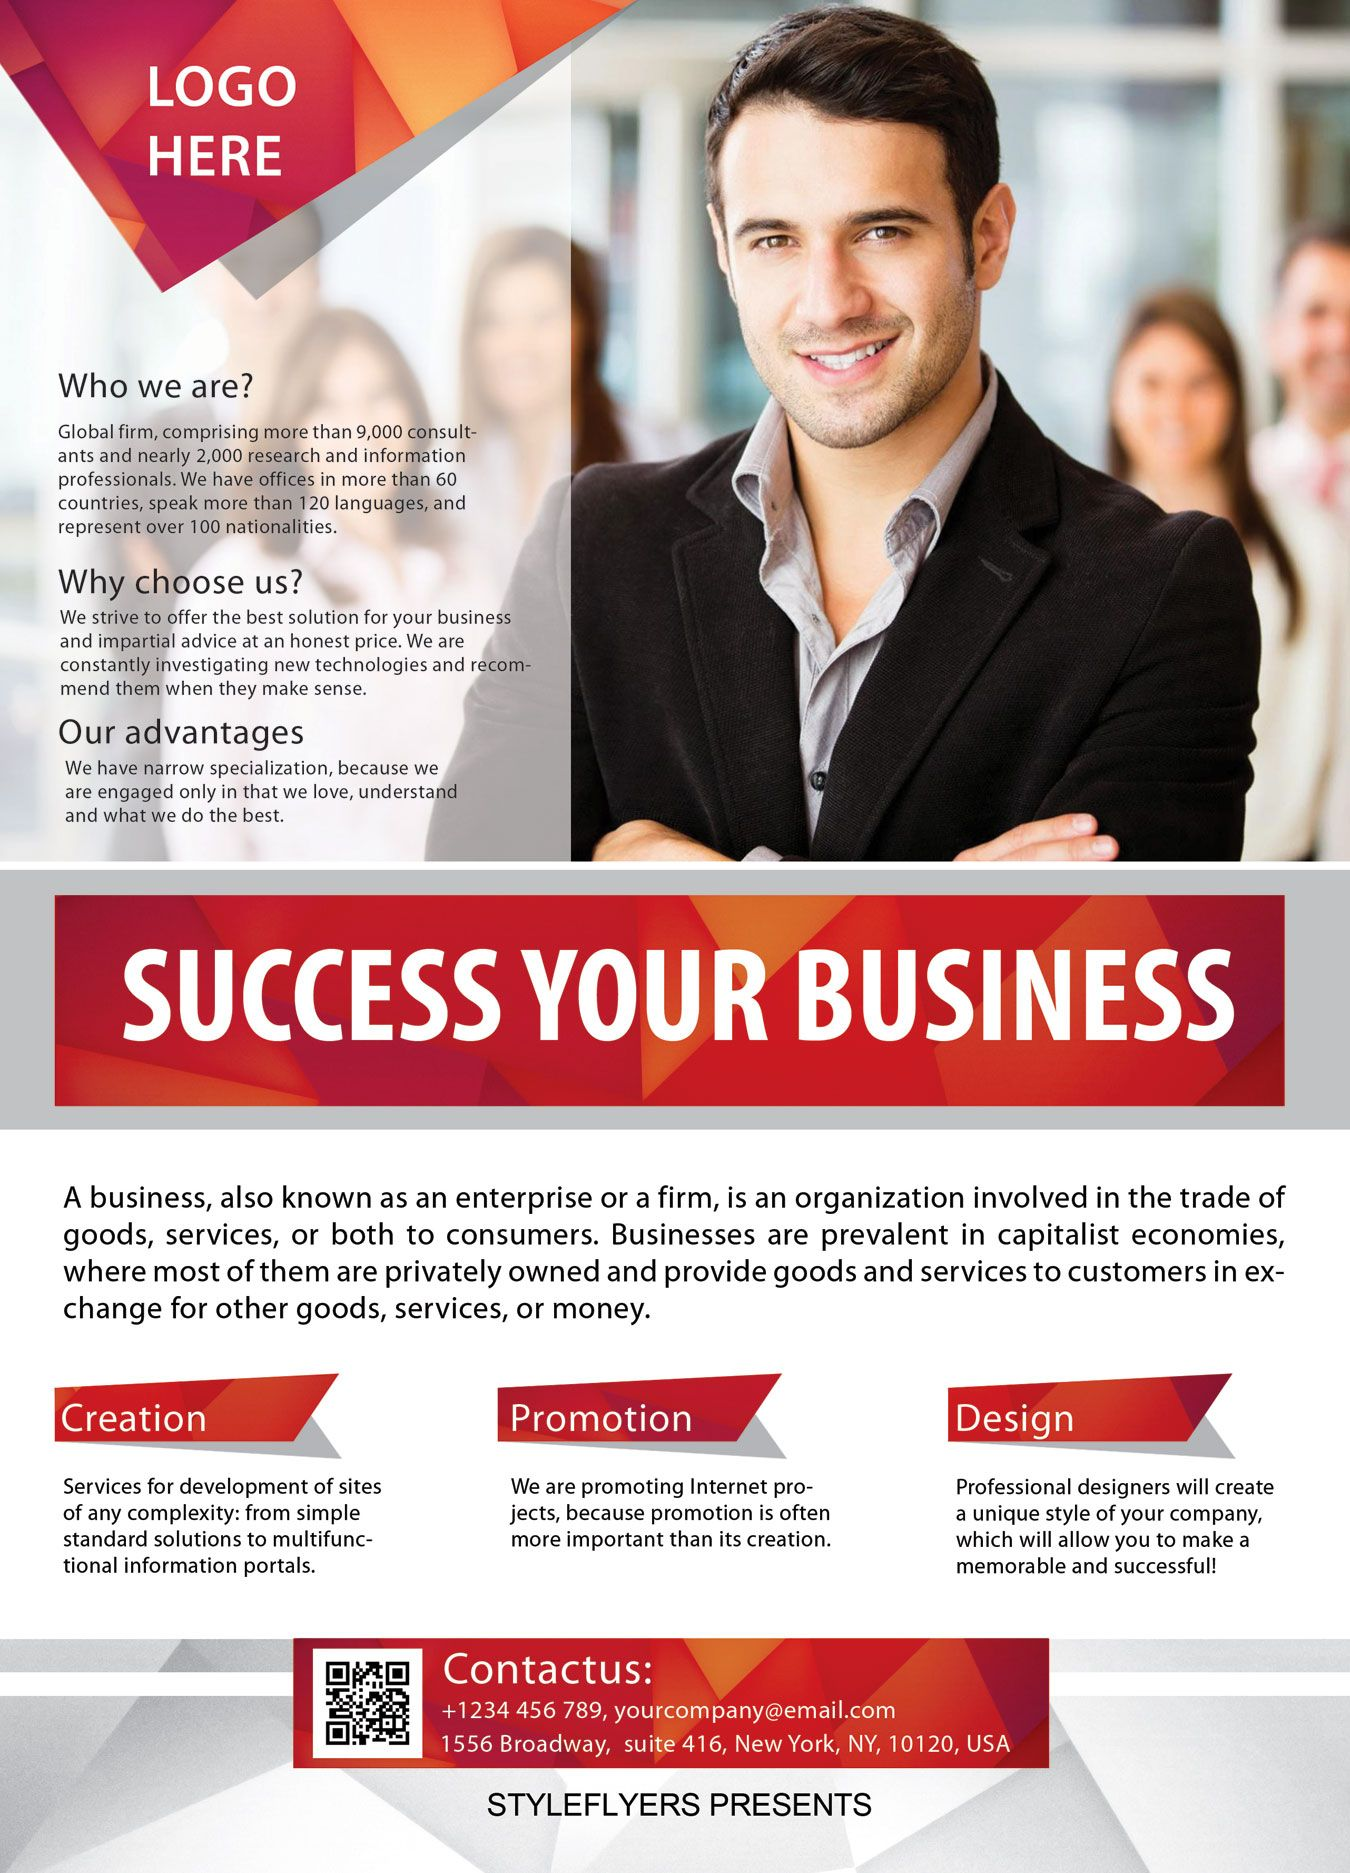 A4 business flyer template free download 2424 flyers pinterest great advertisement for your business training download it right now business training wajeb Images